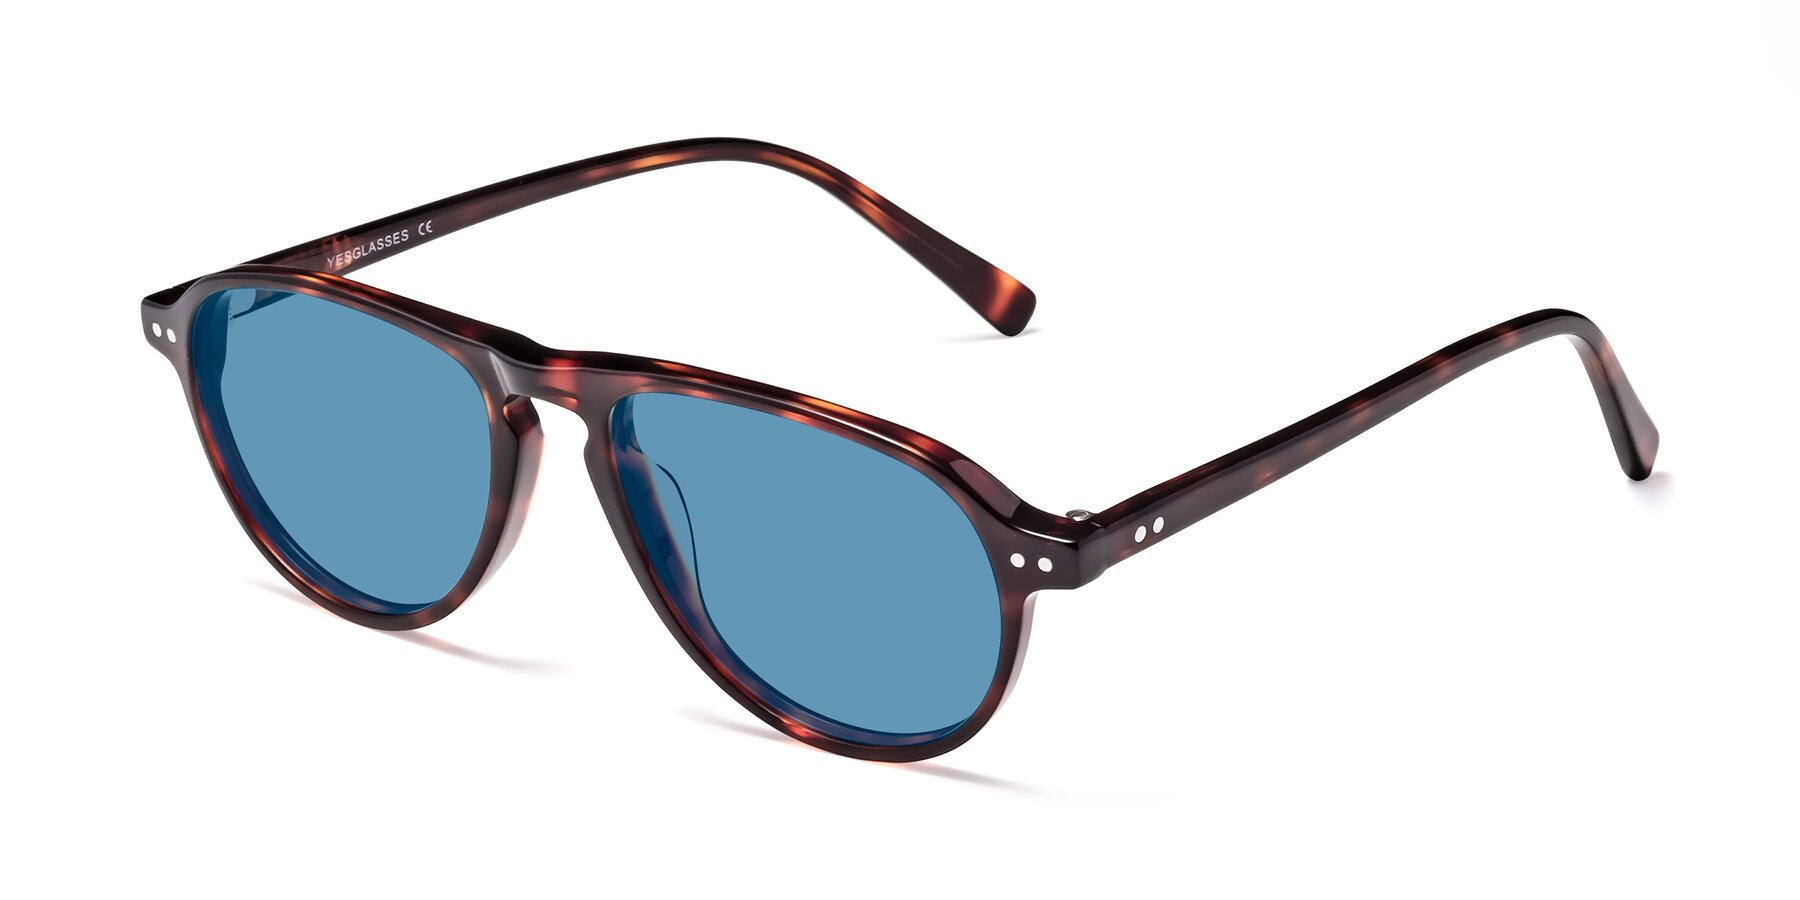 Angle of 17544 in Burgundy Tortoise with Medium Blue Tinted Lenses